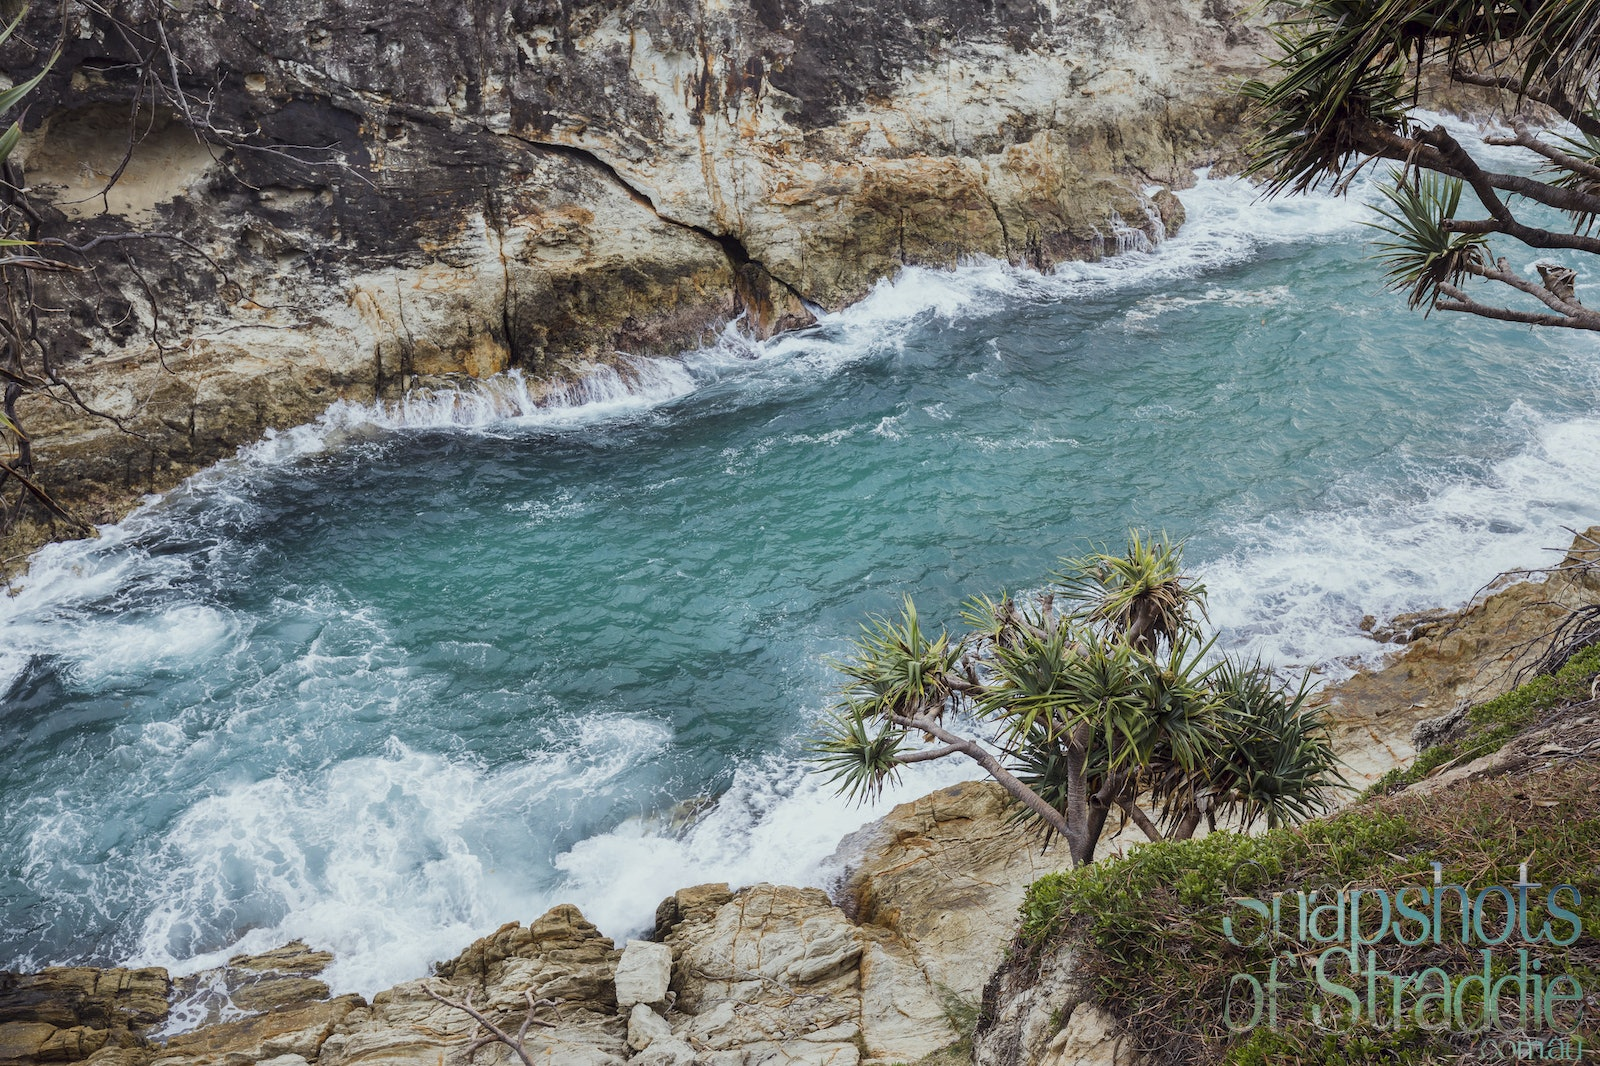 North Gorge - Snapshots of Straddie. Wall Art Landscape and Seascape Photography by Julie Sisco. Photos from North Stradbroke Island, Queensland, Australia....